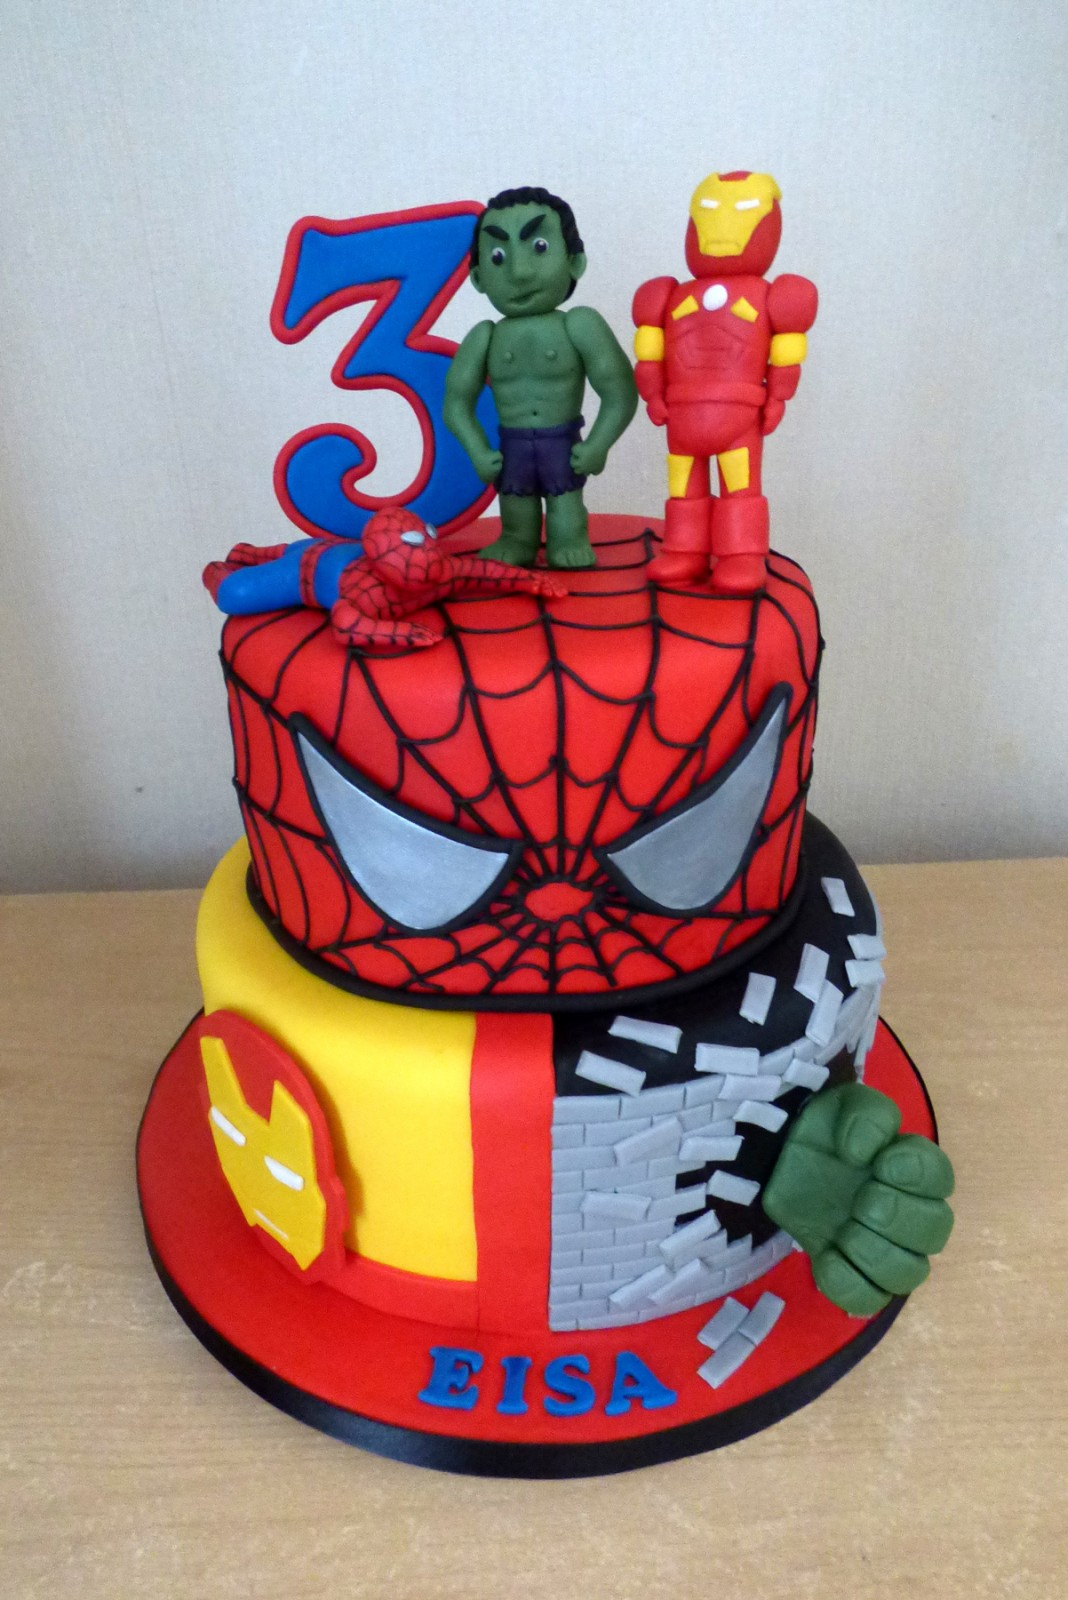 Stupendous 2 Tier Super Heroes Birthday Cake Susies Cakes Funny Birthday Cards Online Chimdamsfinfo